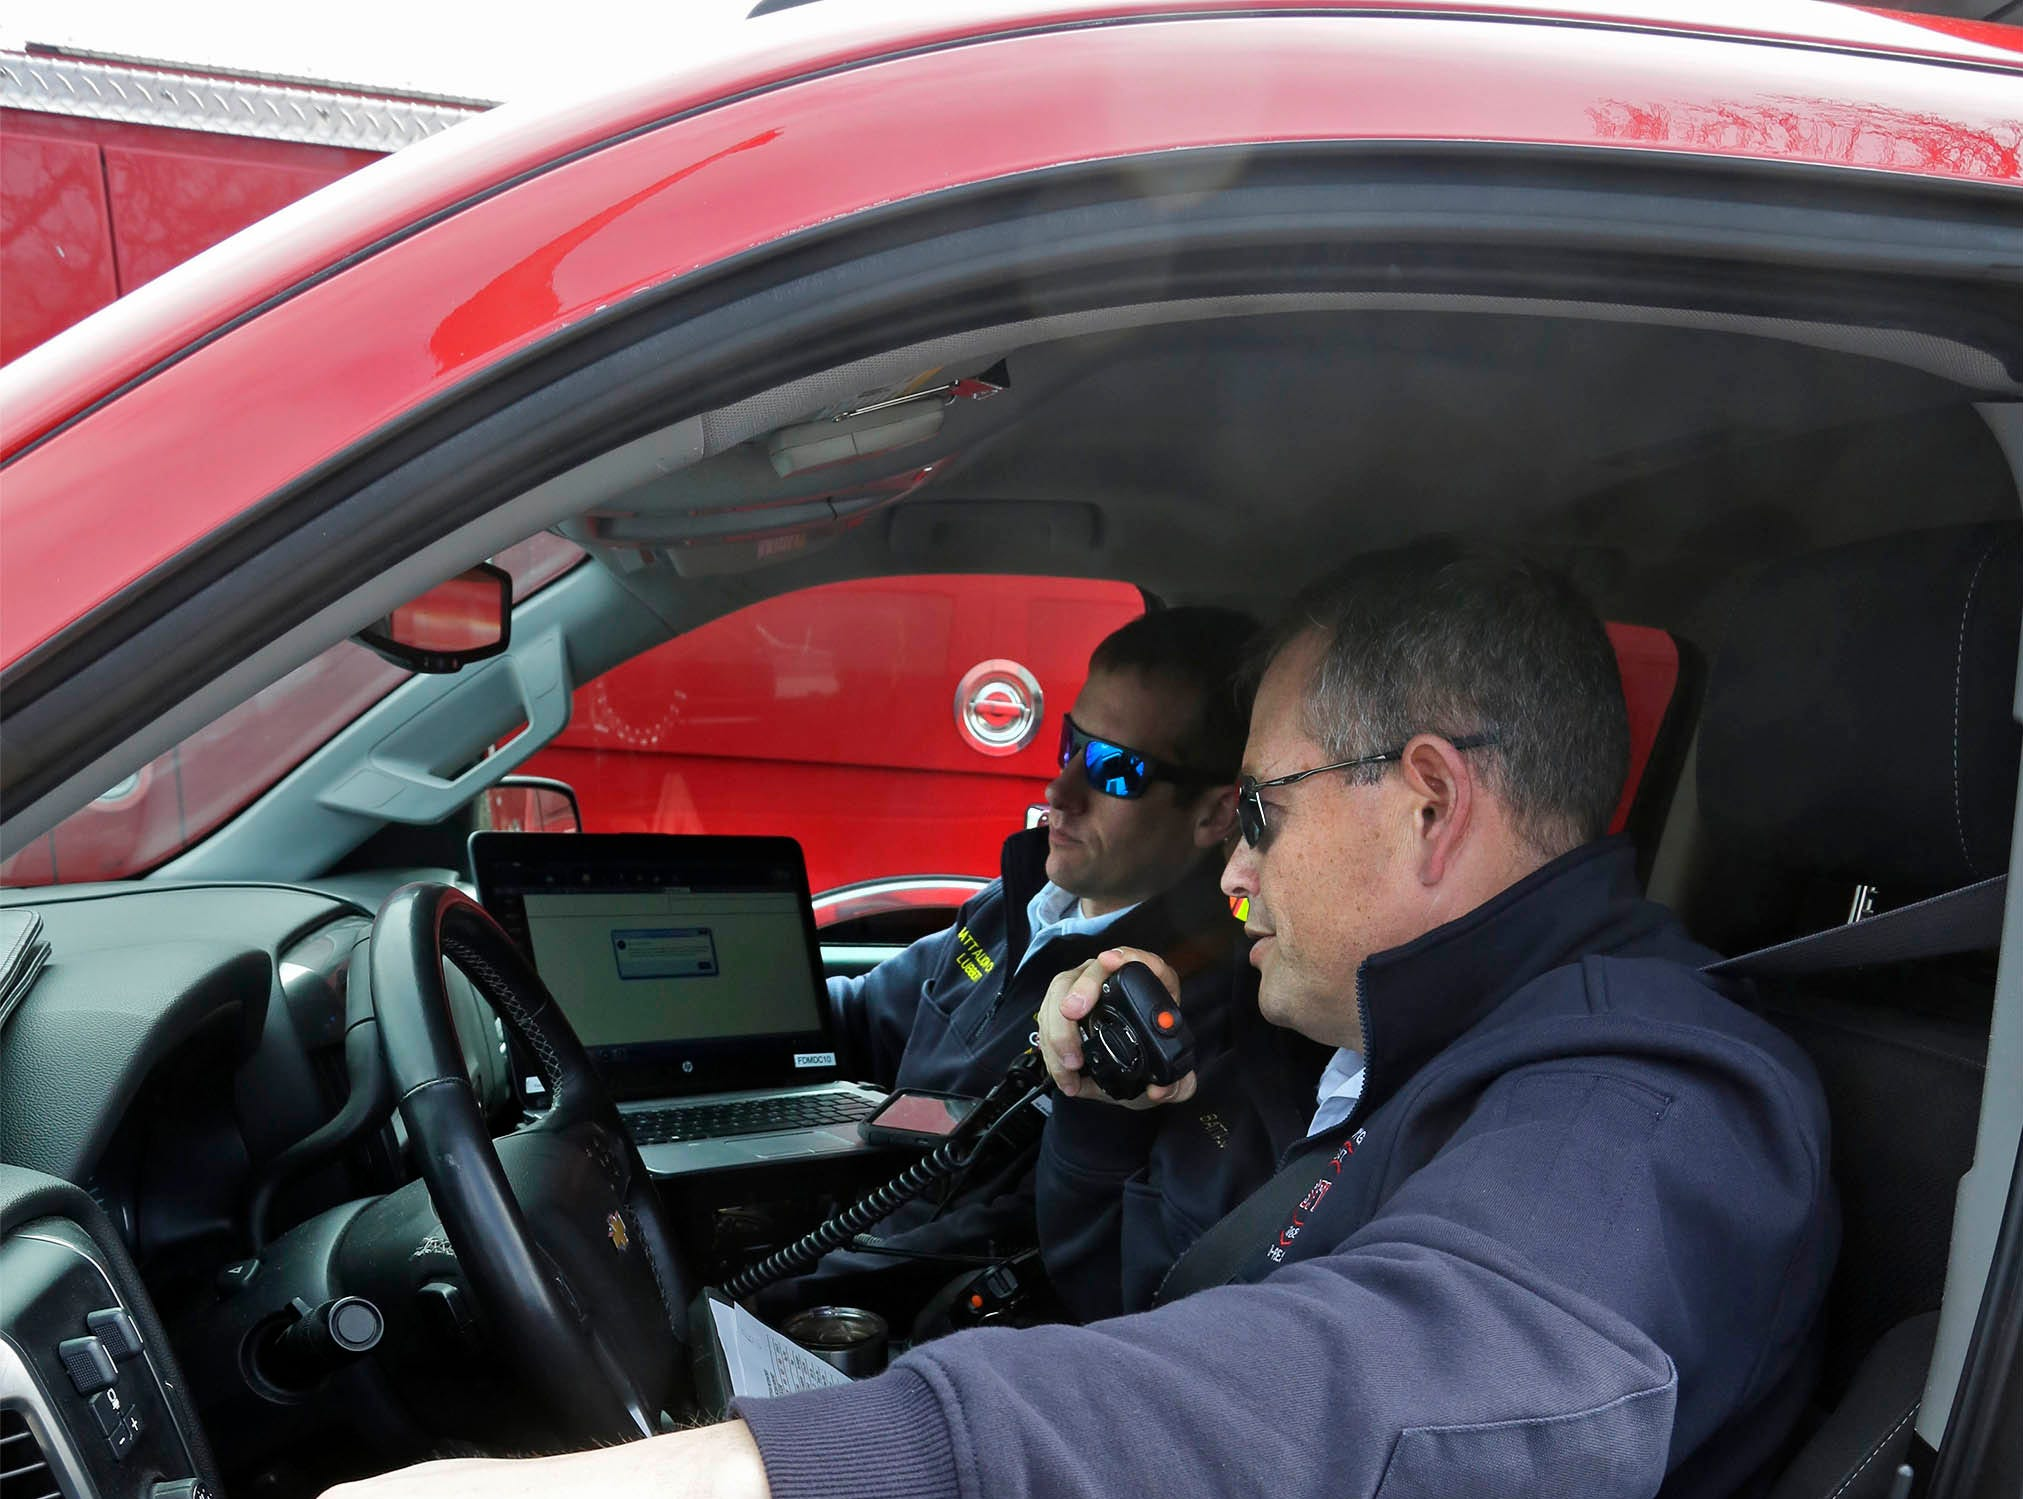 DRILL EXERCISE: Sheboygan Fire Department's Jeff Salzman, foreground and Mike Lubbert man the Incident Command vehicle during a drill at Aurora Sheboygan Memorial Medical Center, Tuesday, April 16, 2019, in Sheboygan, Wis.